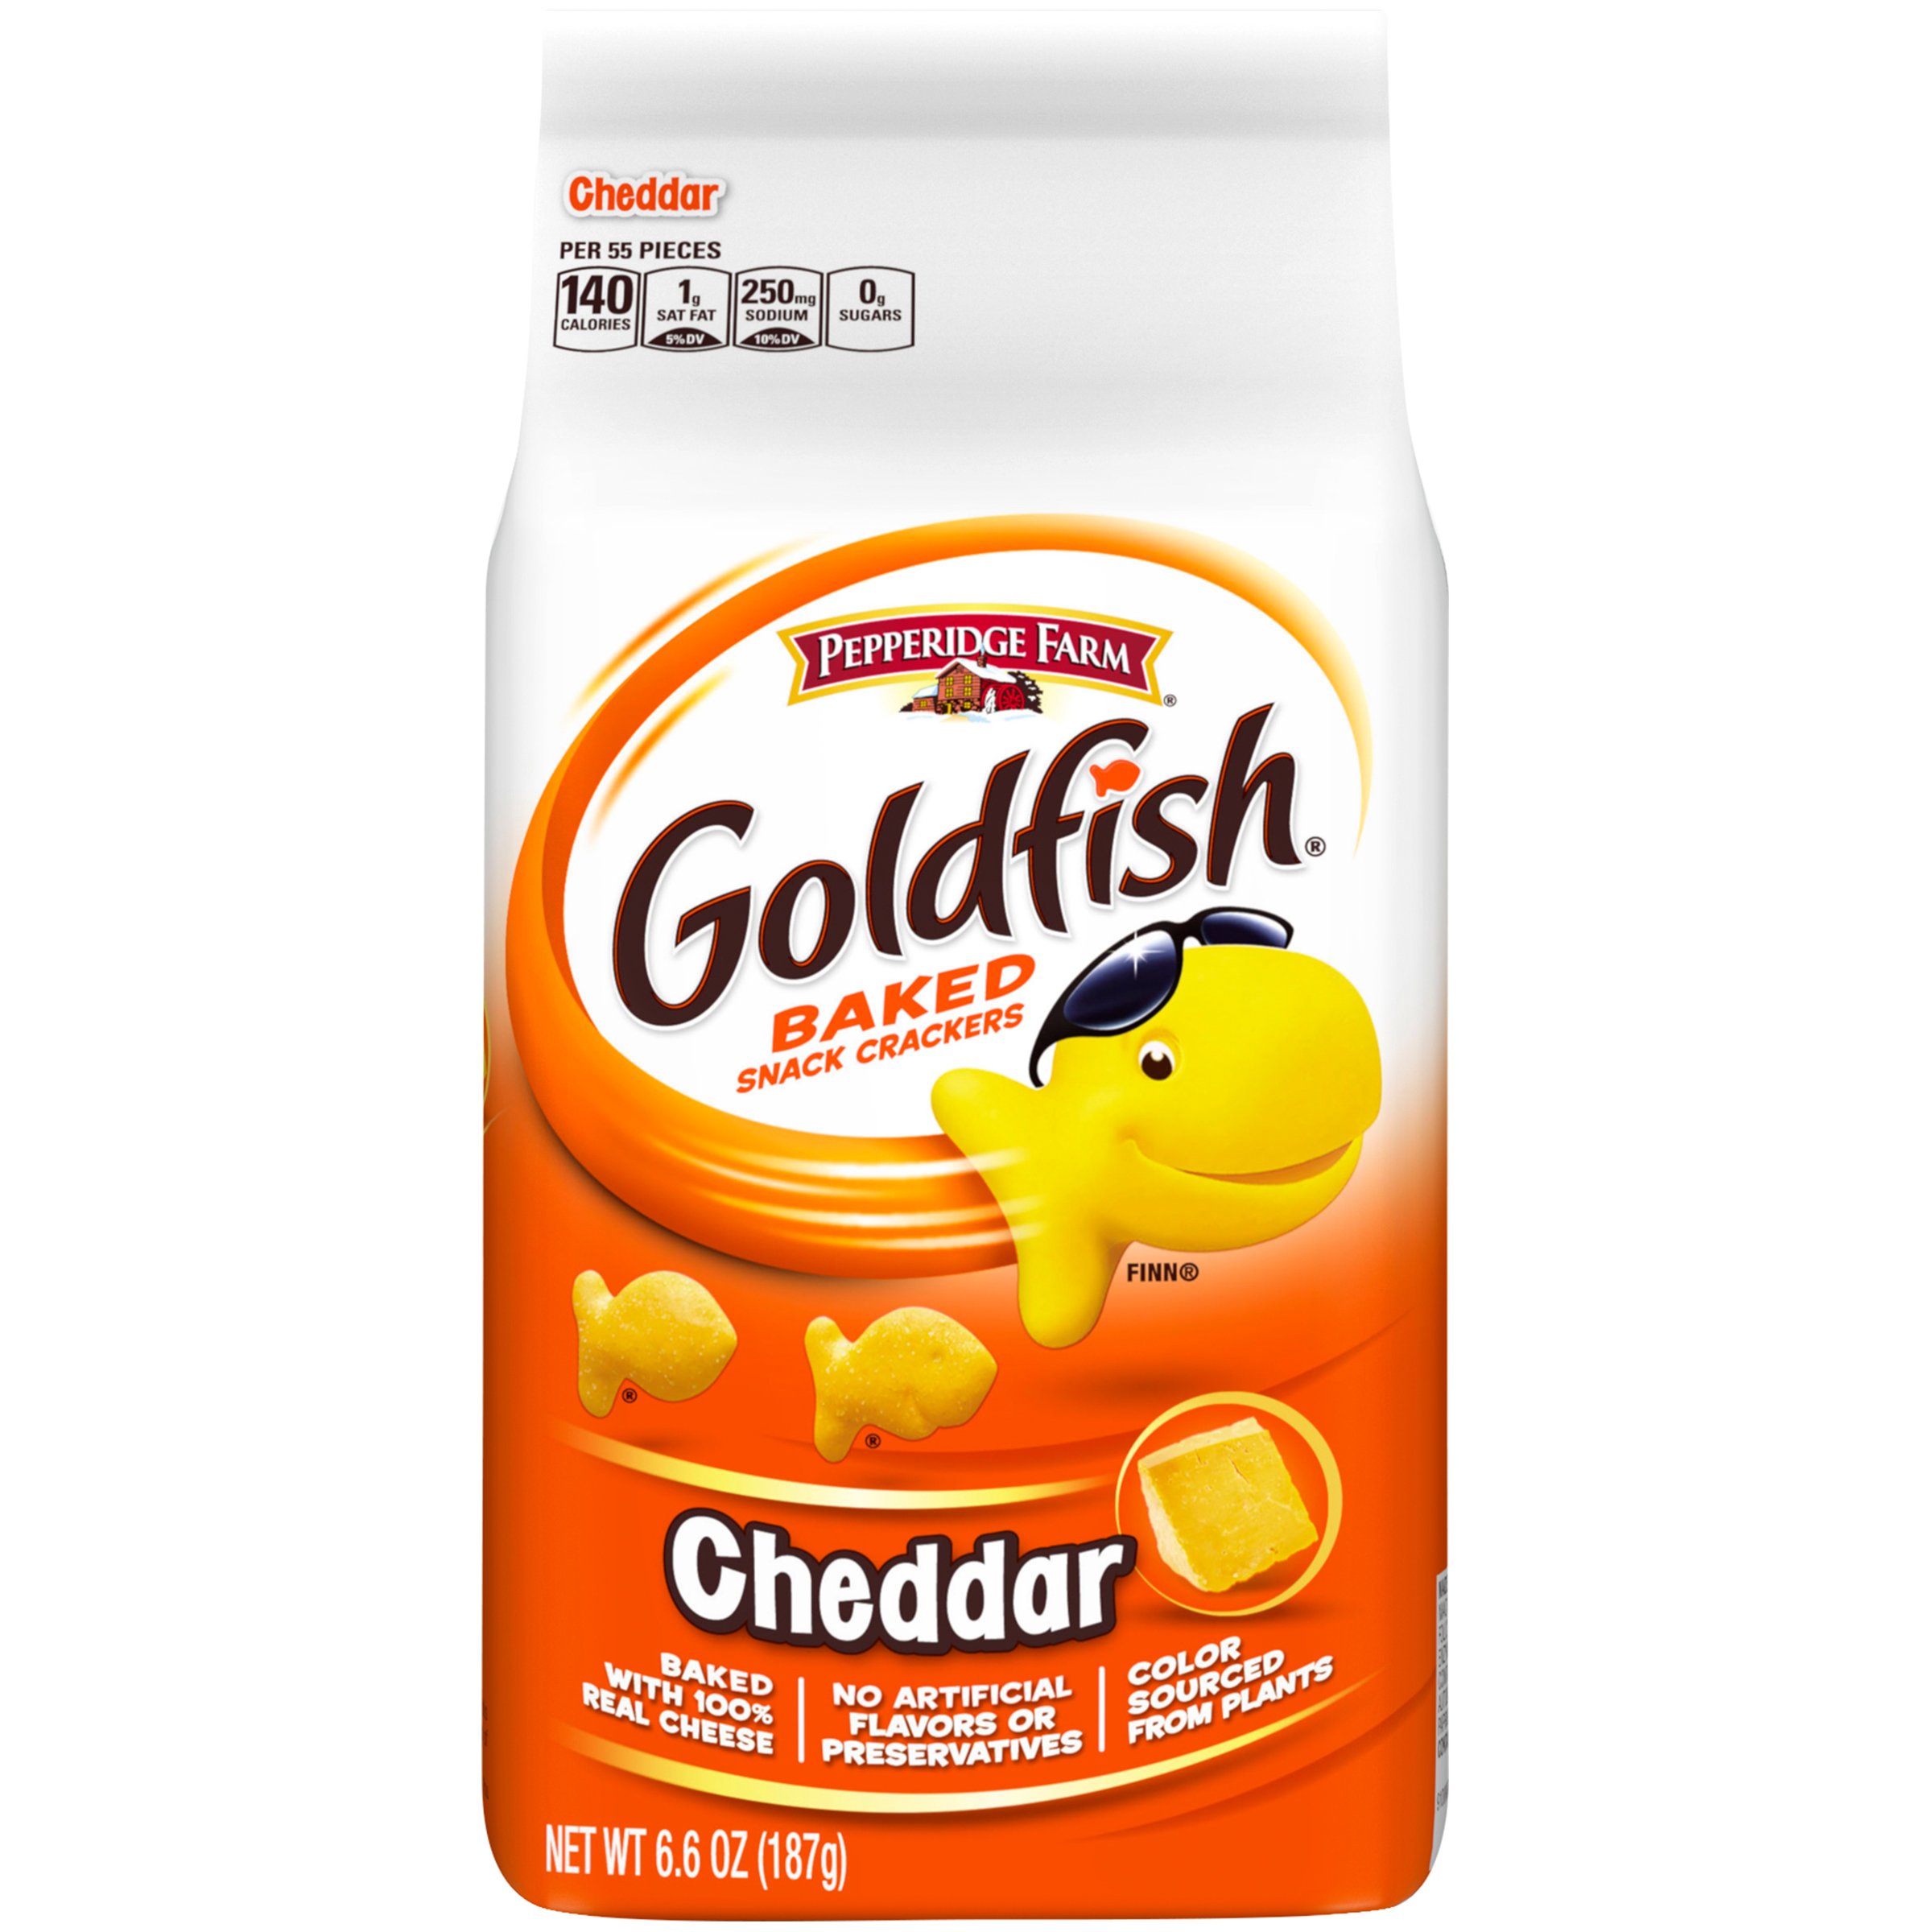 Pepperidge Farm Goldfish Baked Cheddar Snack Crackers Food Product Image